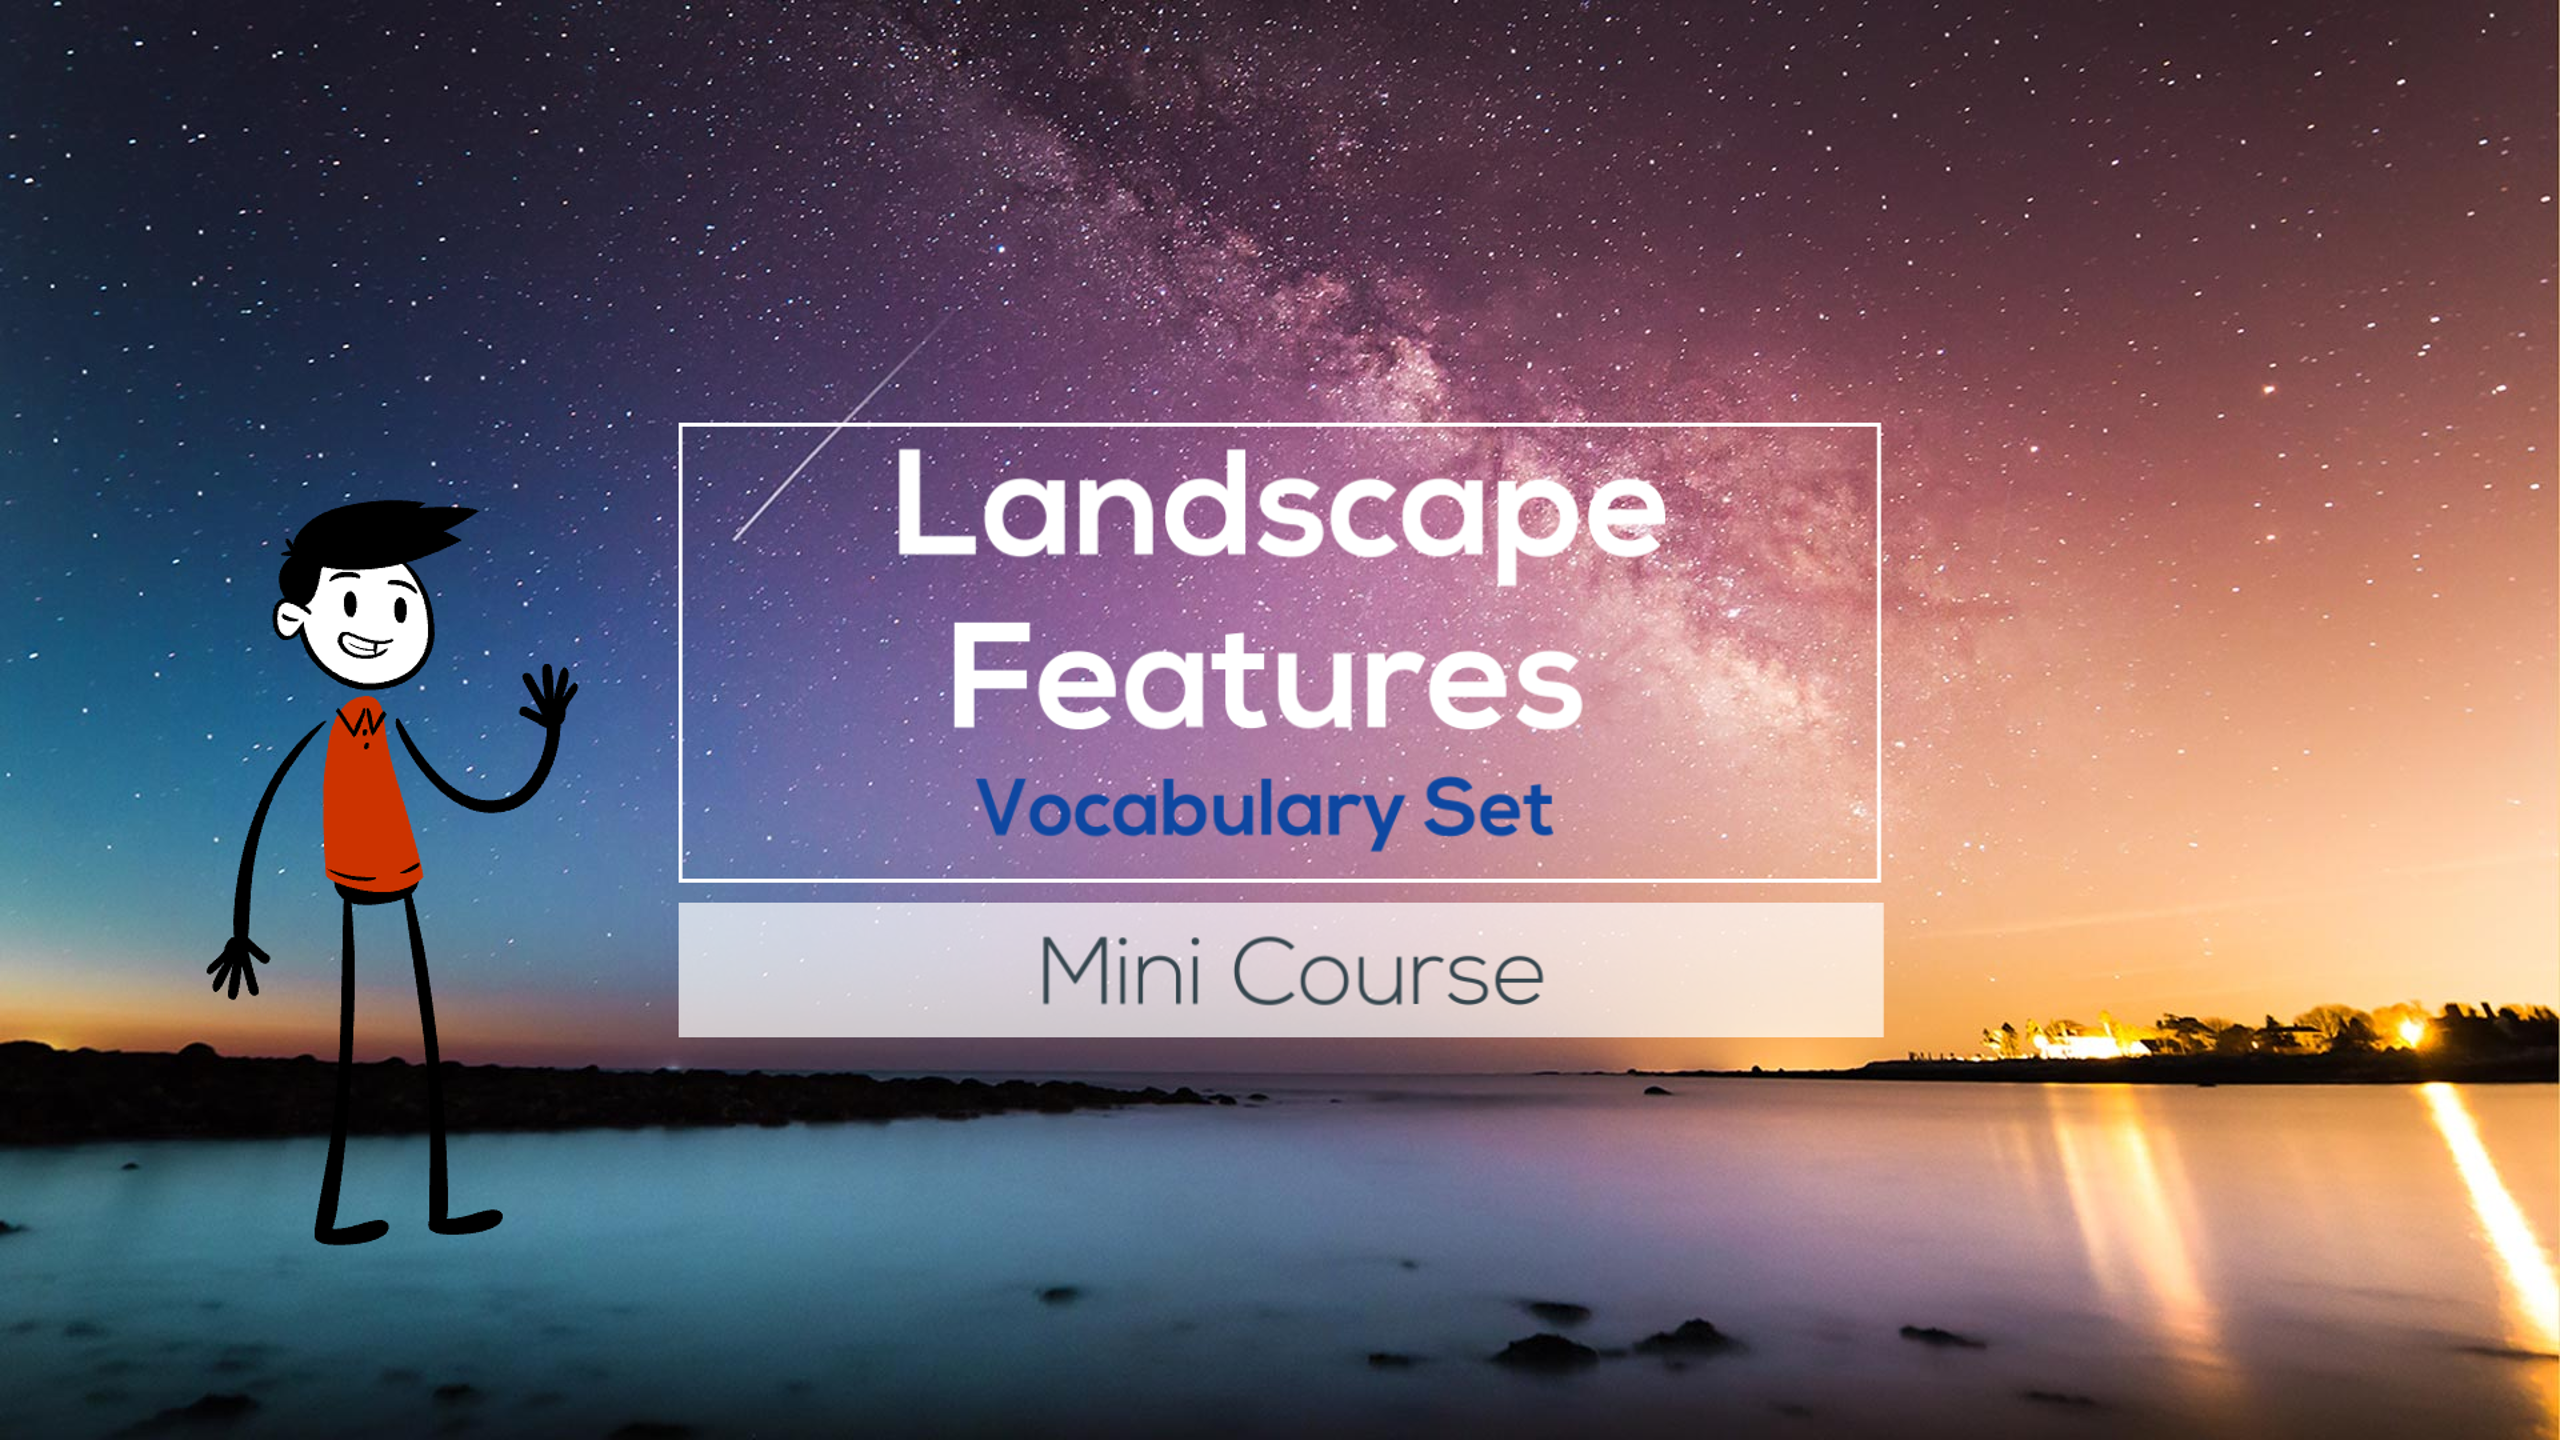 Landscape Features mini course